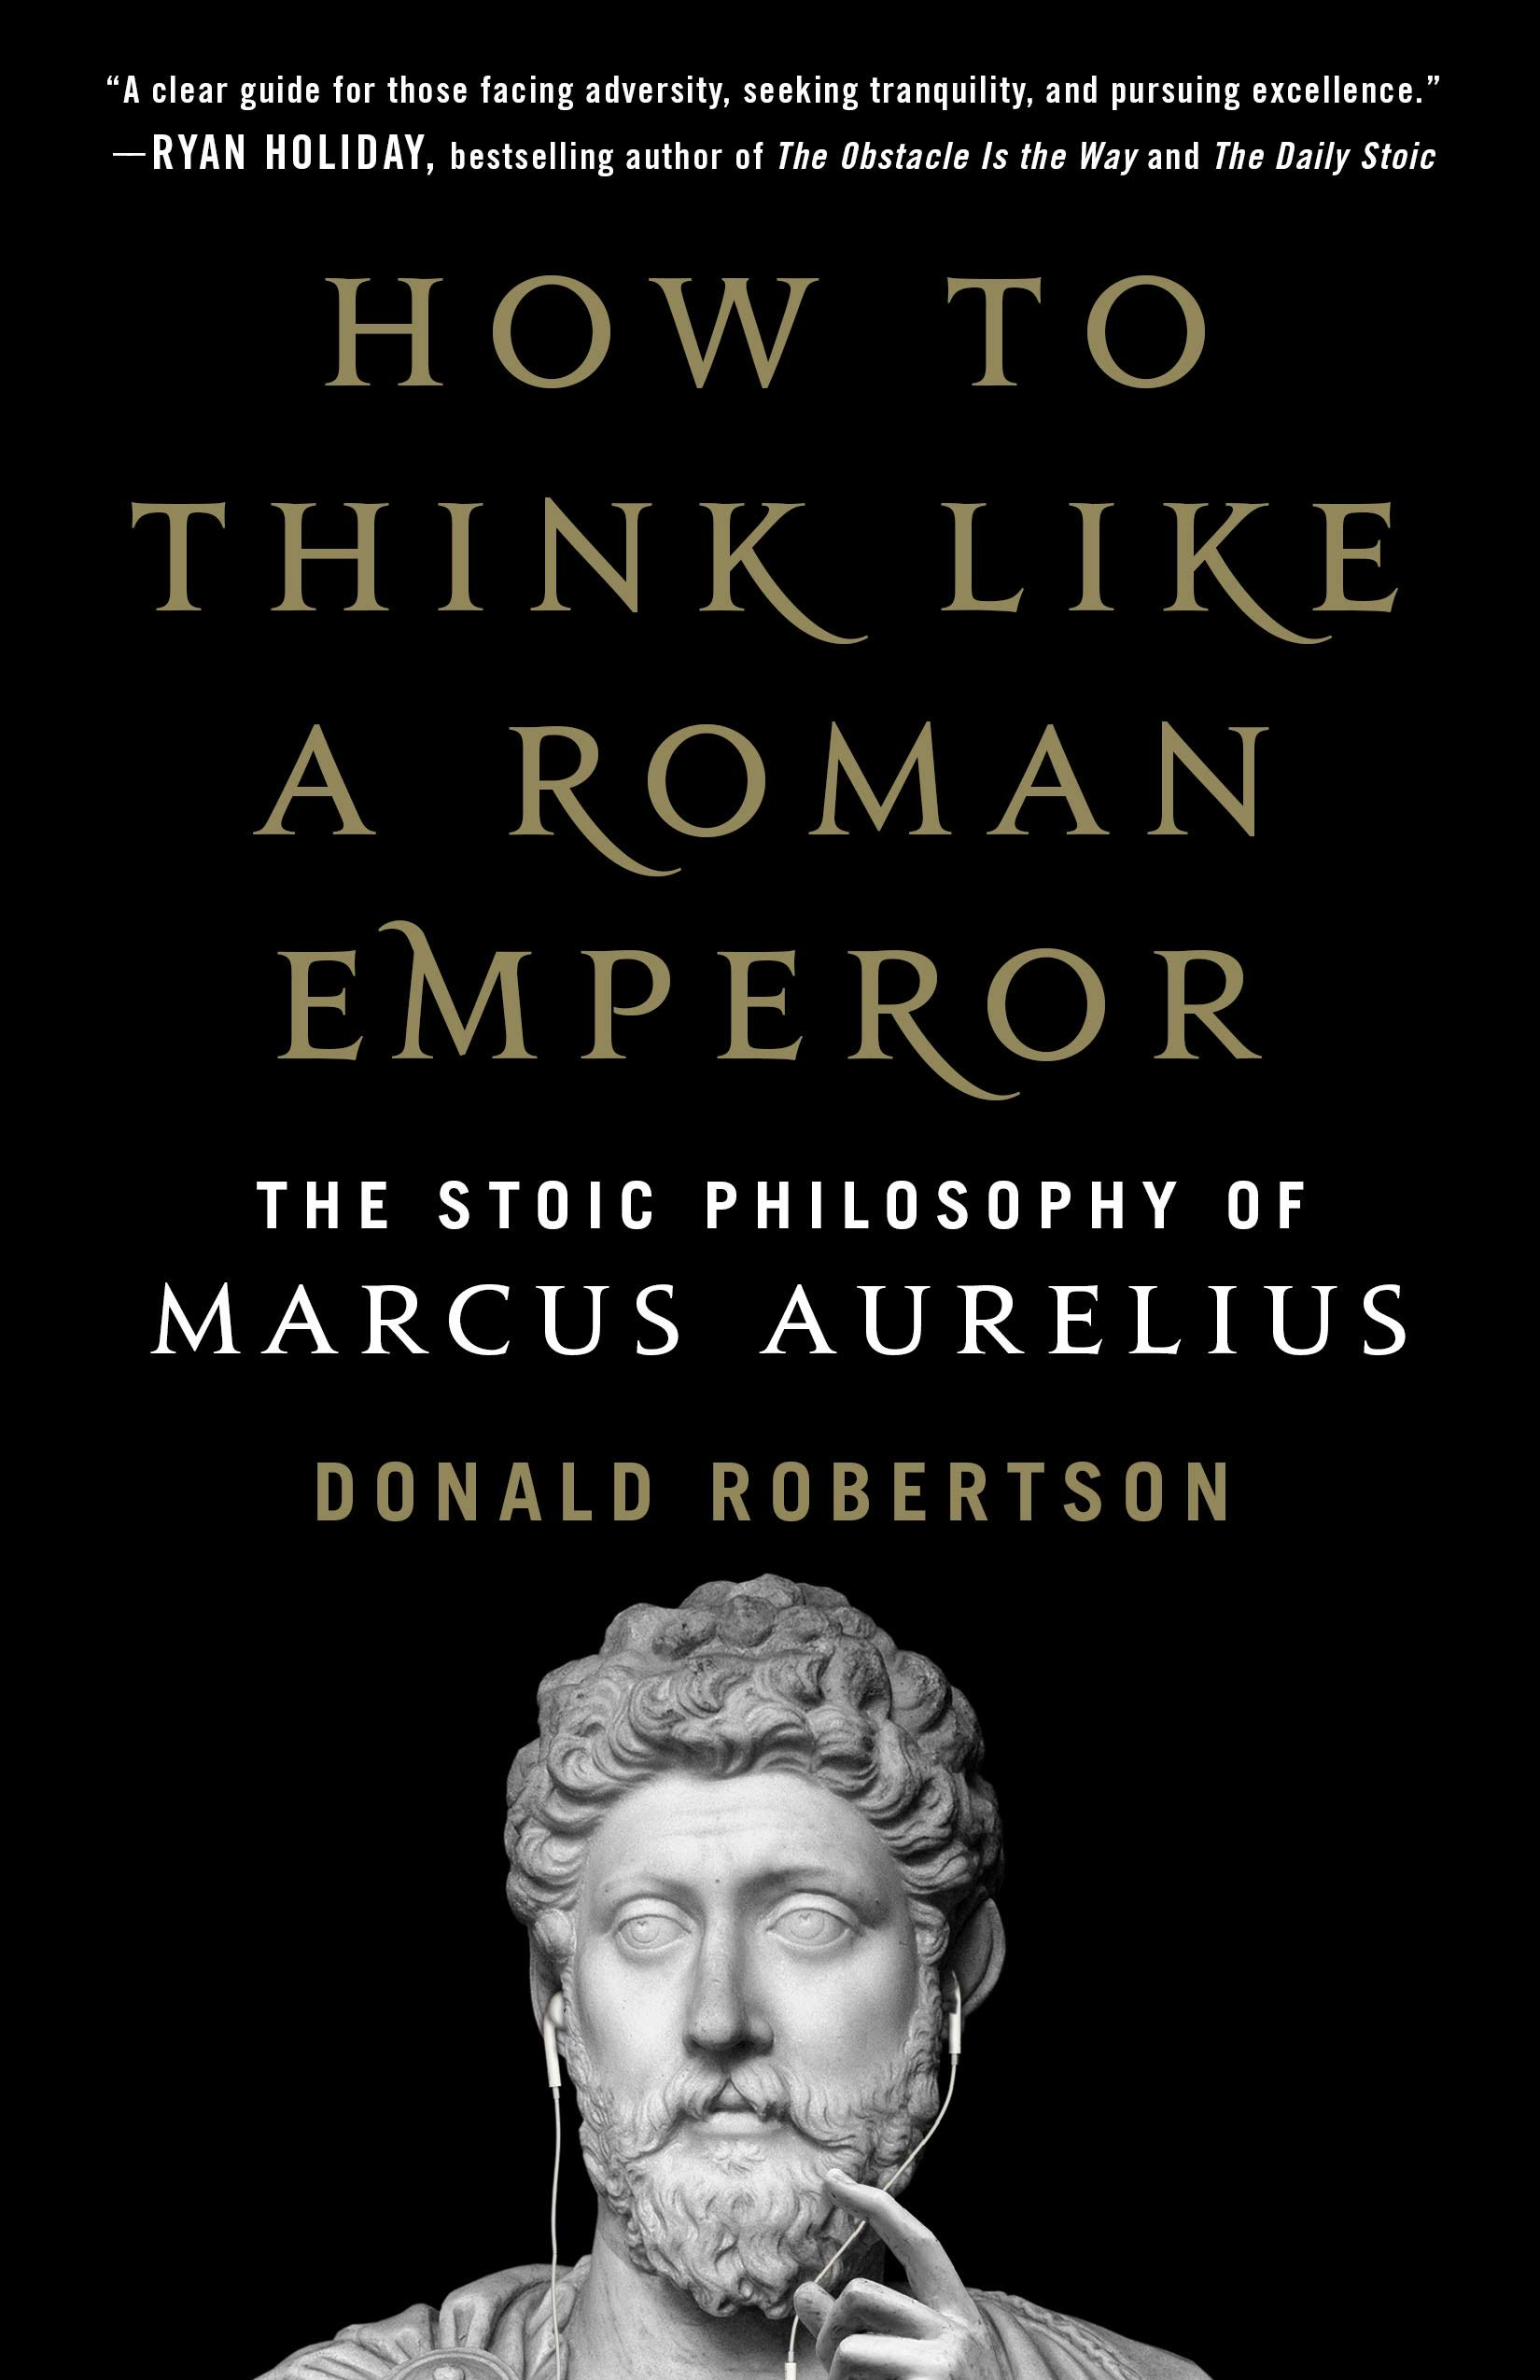 Book Review: How to Think Like A Roman Emperor